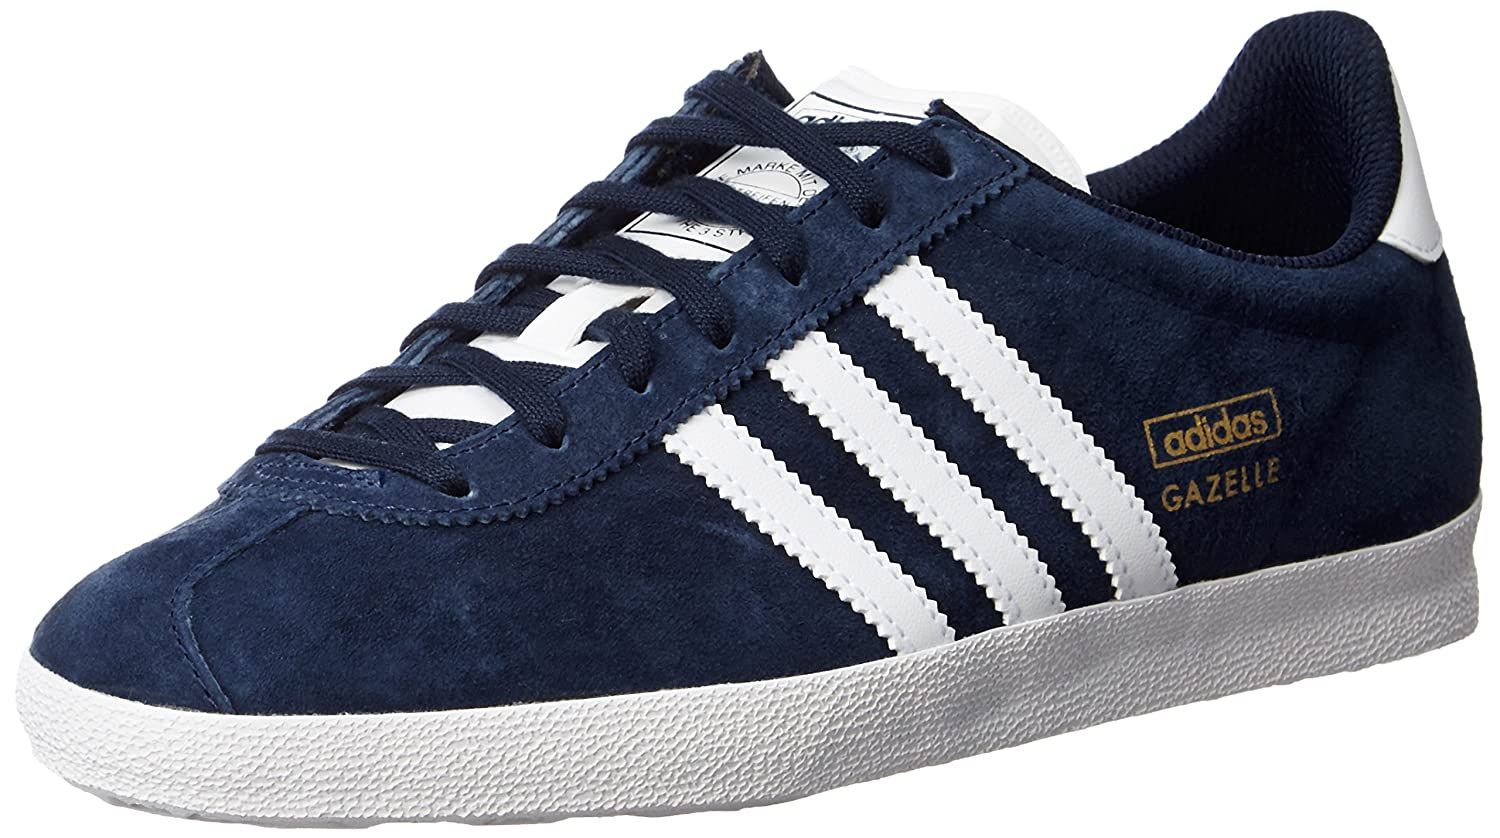 adidas Originals Gazelle Og, Baskets mode homme  Adidas  Amazon.fr   Chaussures et Sacs 341c26e7b0f3